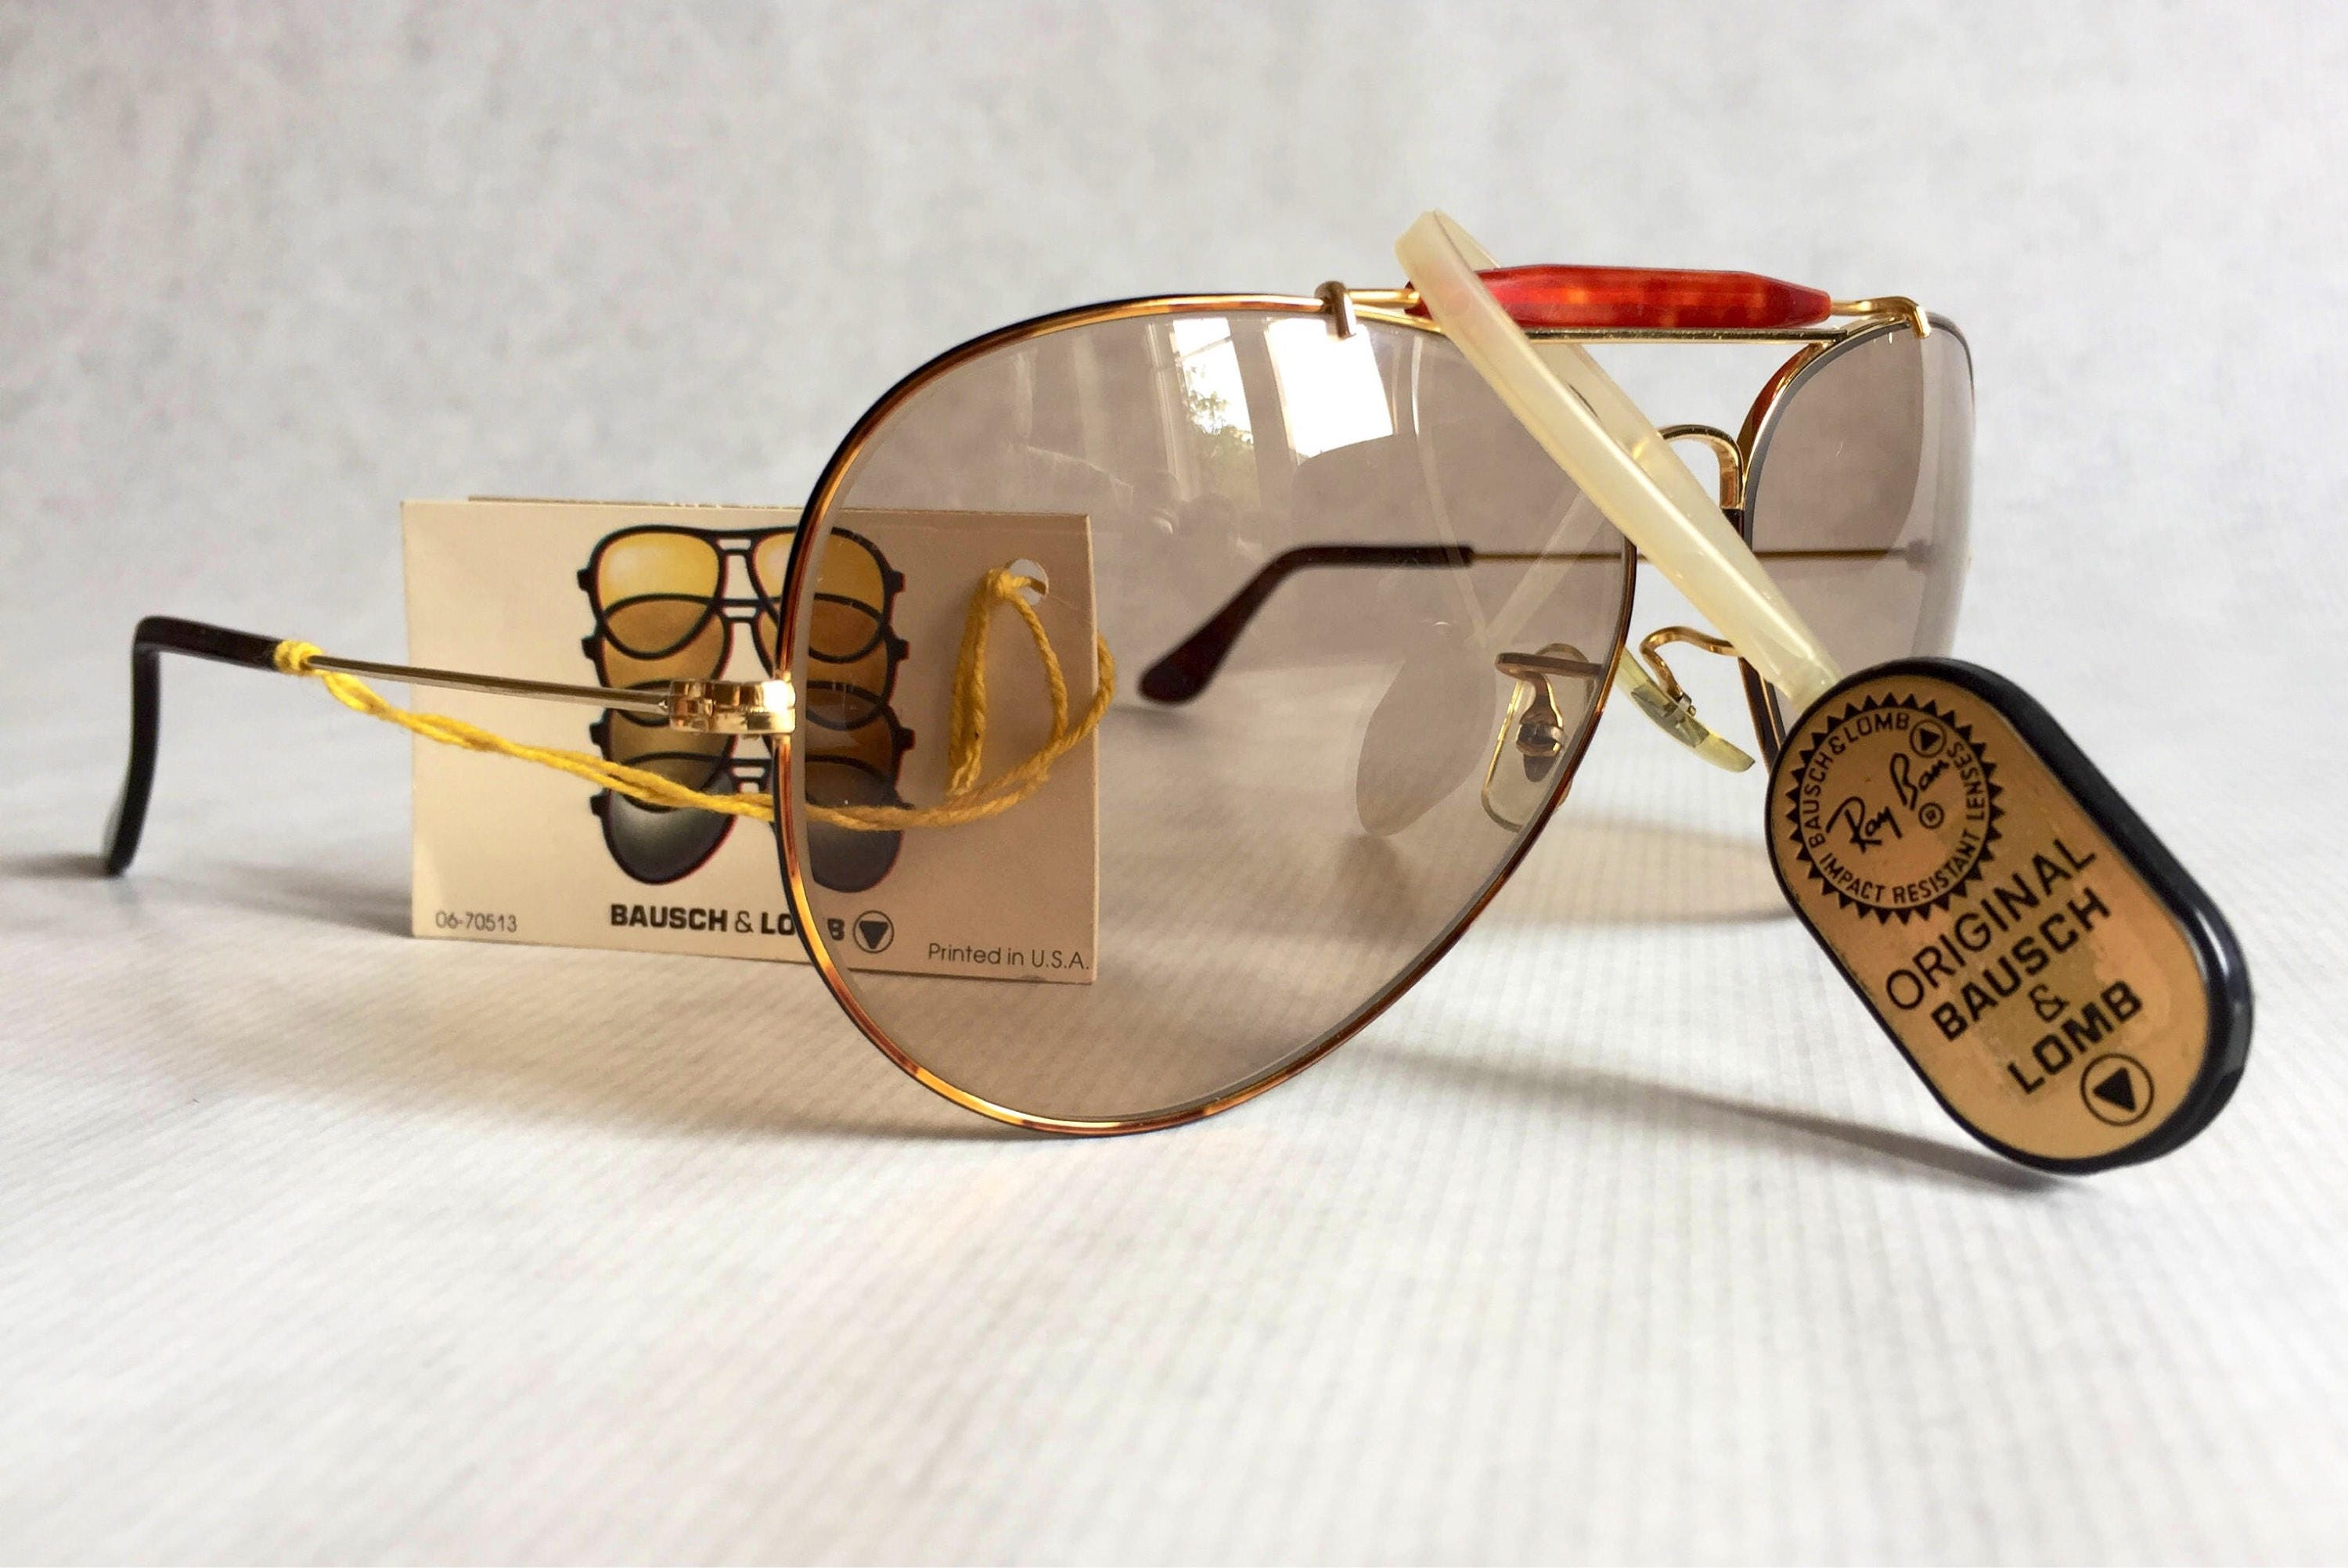 dd1551041b Ray-Ban Outdoorsman Tortuga Ambermatic™ by Bausch   Lomb Vintage Sunglasses  NOS Full Set